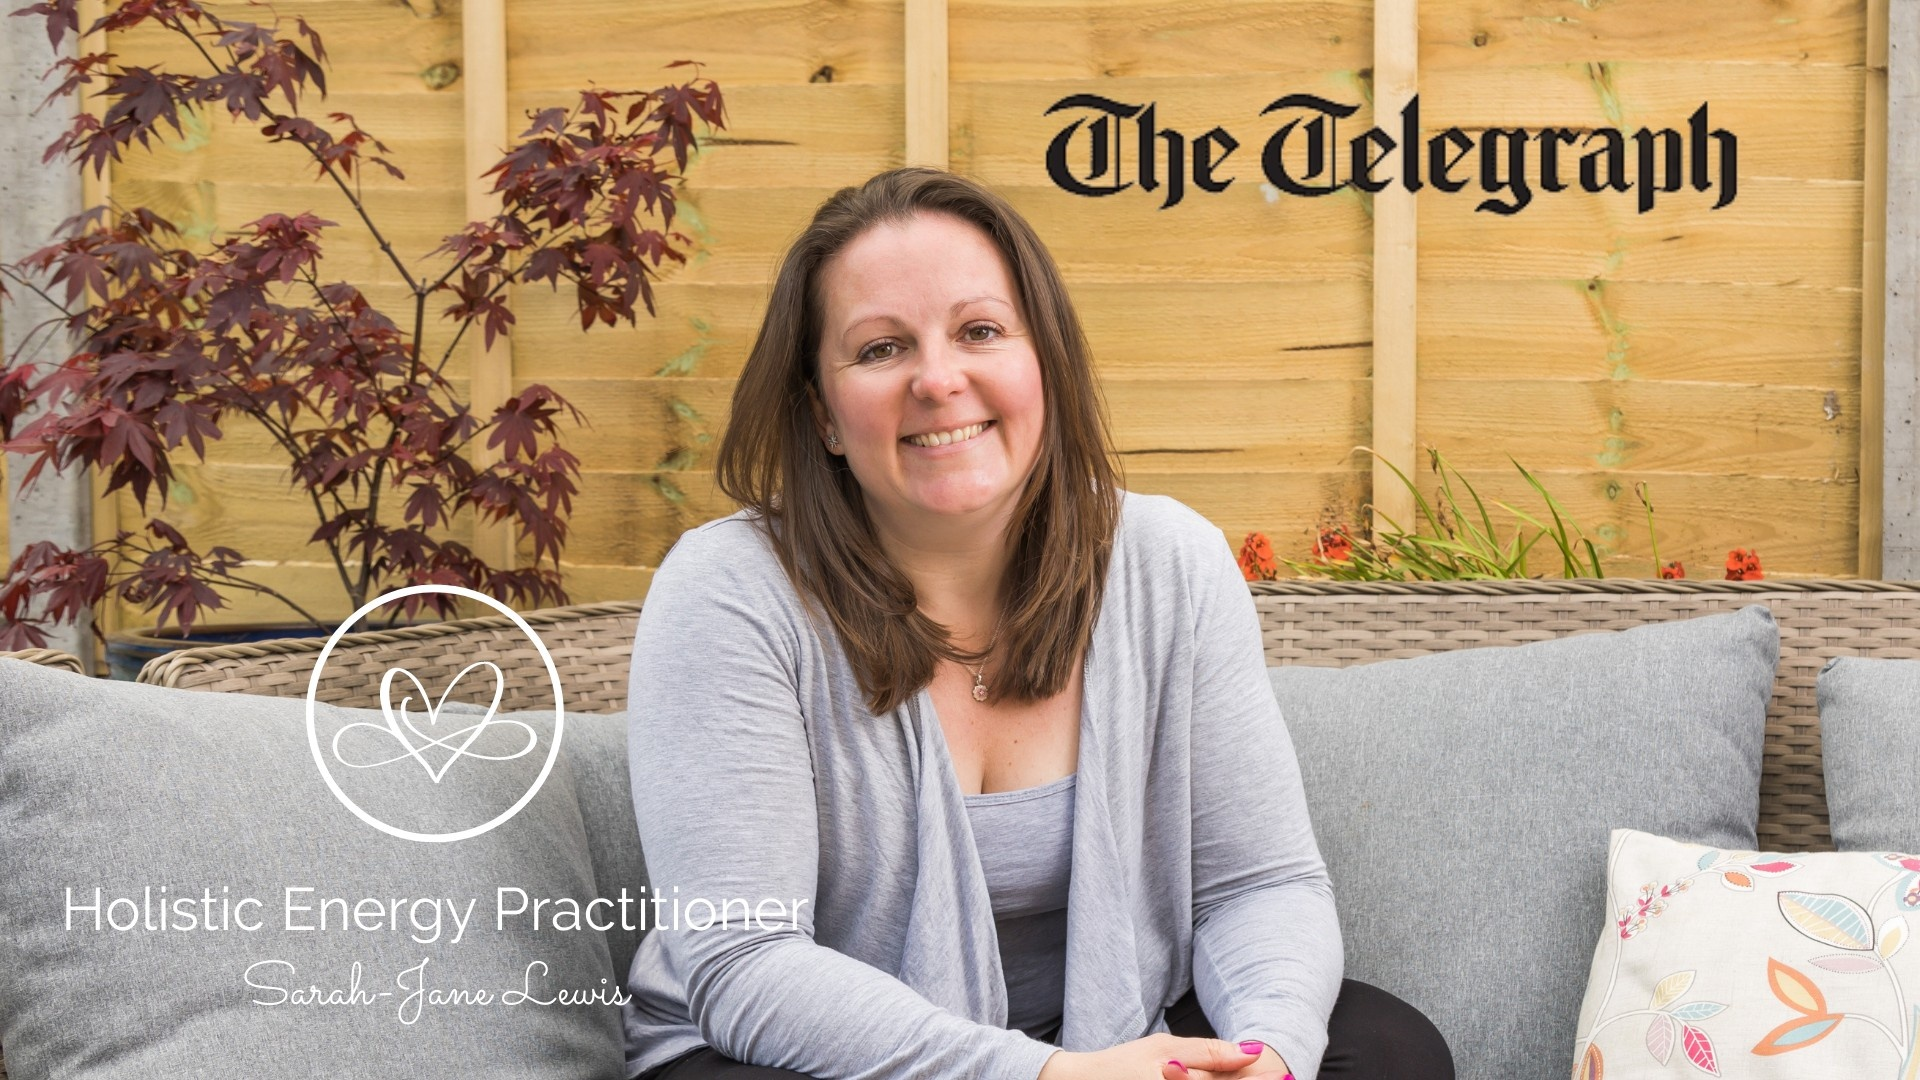 Sarah-Jane Lewis The Telegraph Holistic Energy Practitioner Woman Smiling